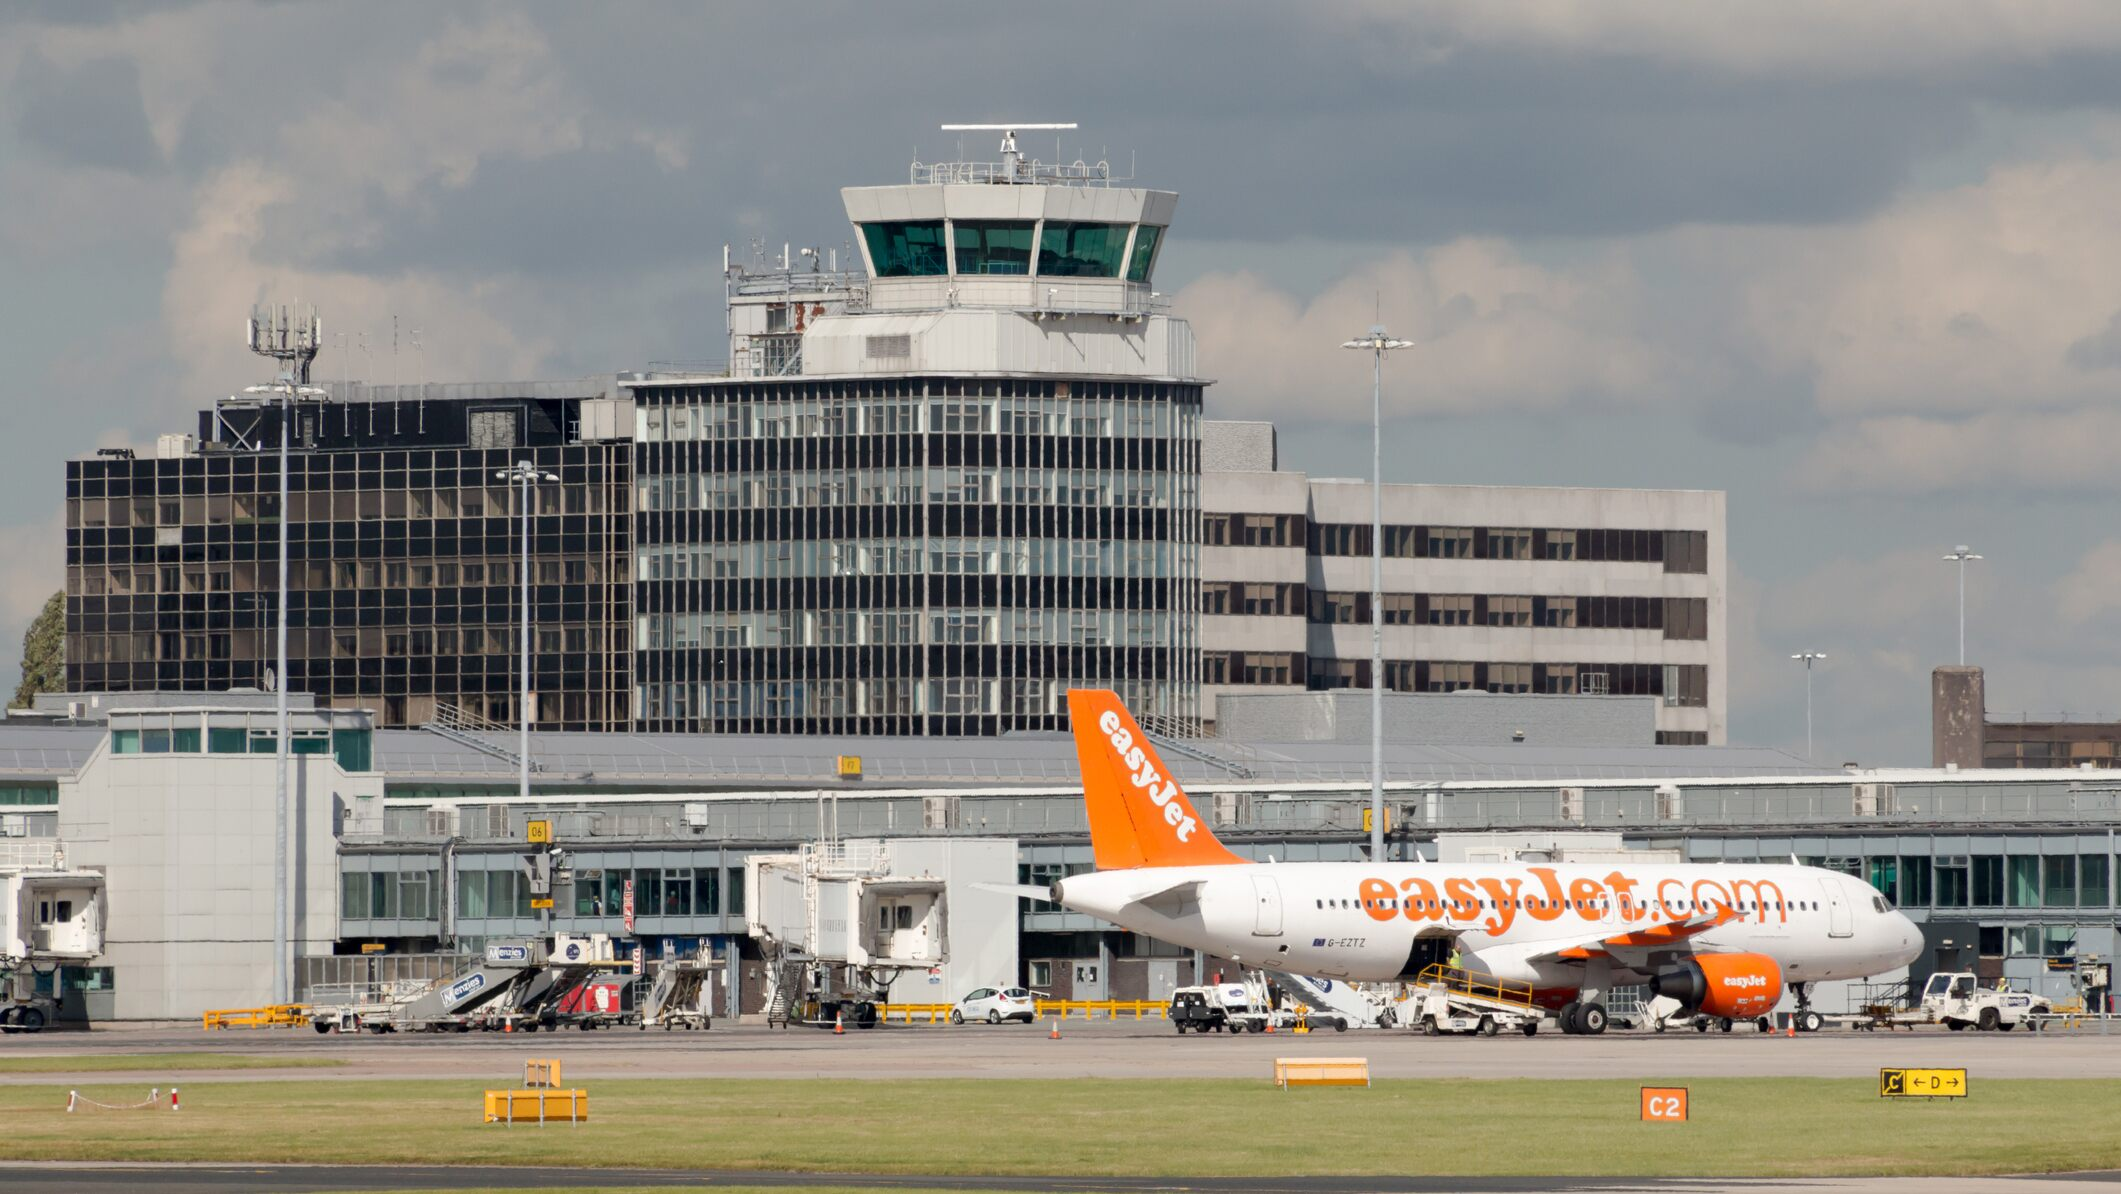 Manchester Airport unable to refuel planes, causing massive delays and cancellations